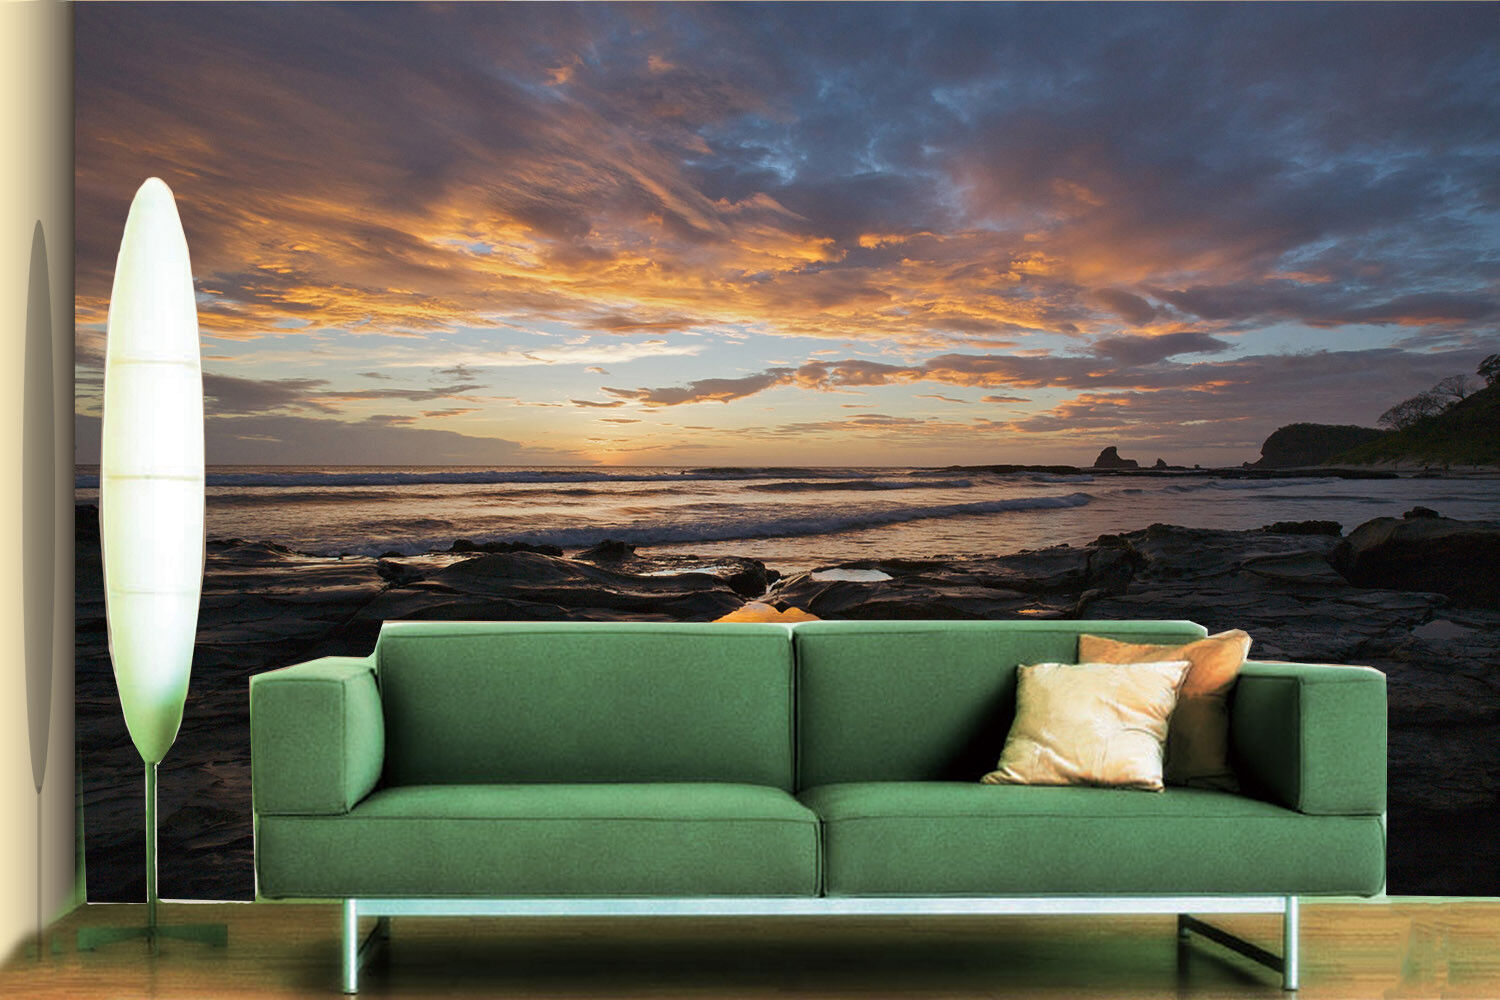 3D Beach Twilight Sky 5 Wall Paper Wall Print Decal Wall Deco Indoor Mural Lemon